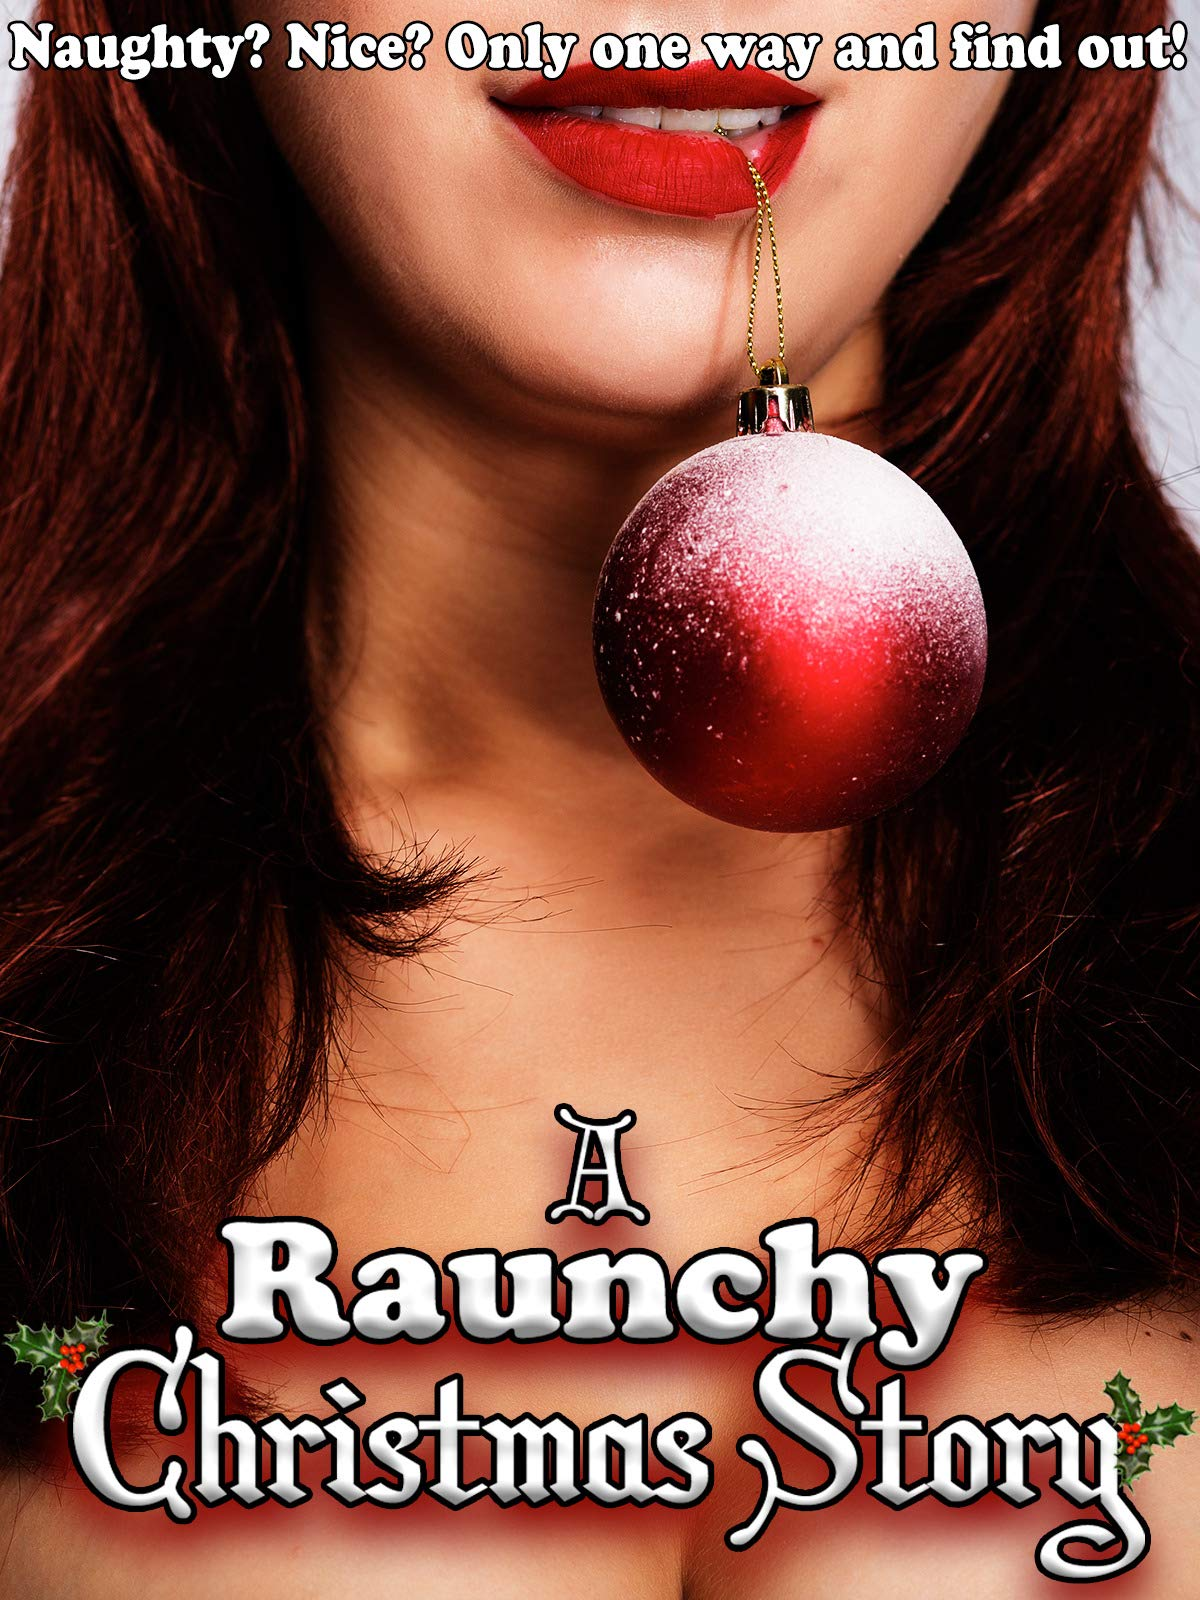 A Raunchy Christmas Story Trailer 2020 Watch A Raunchy Christmas Story | Prime Video